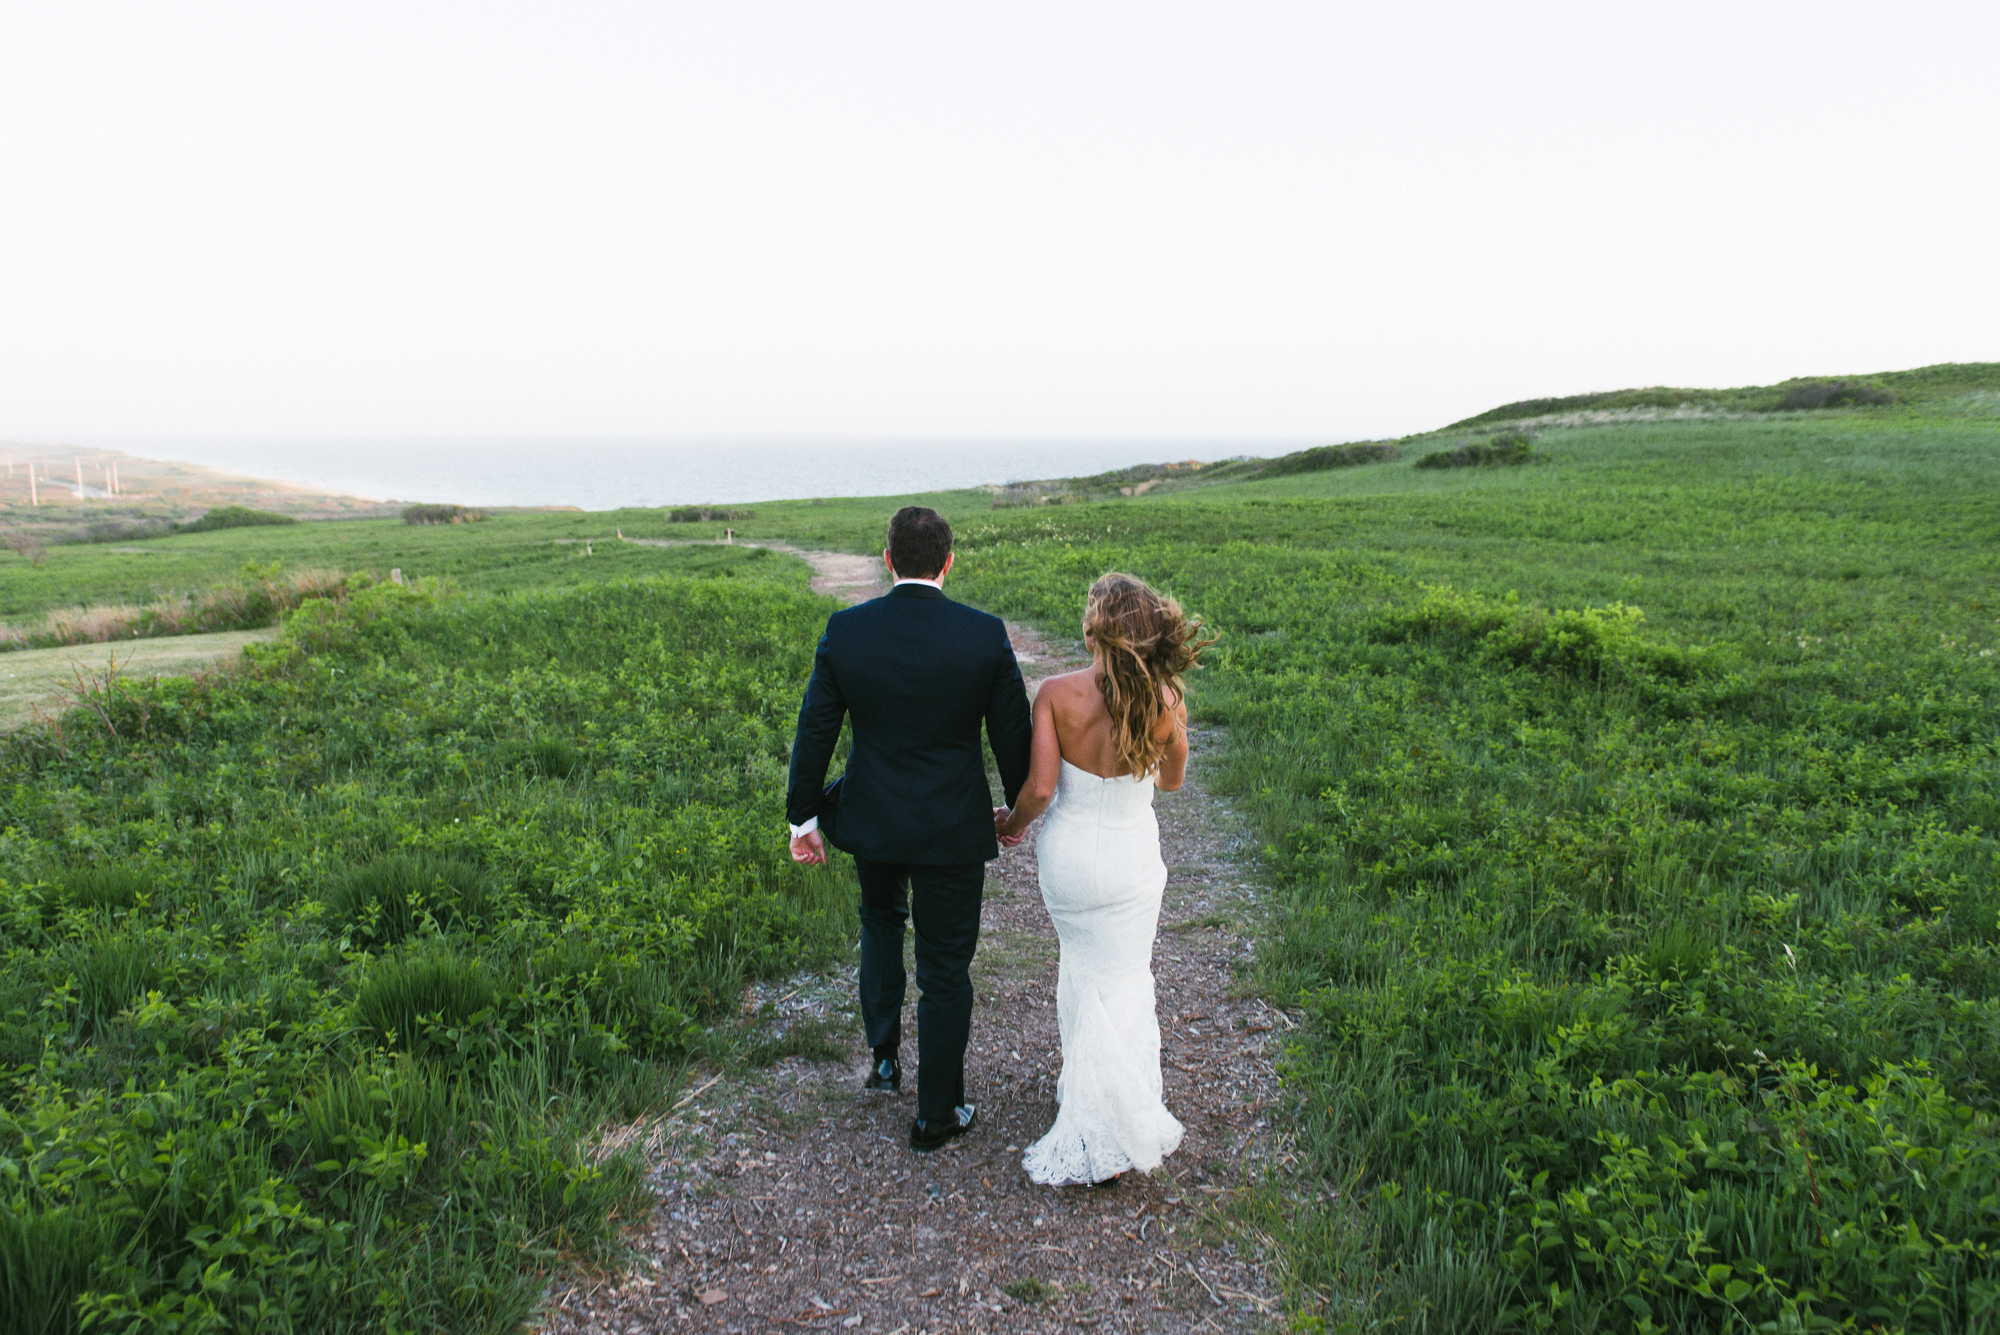 A bride and groom on a walking path outside the Vanderhoop Homestead in Aquinnah A bride and groom at a martha's vineyard wedding venues West Chop Club photo by David Welch Photography photo by David Welch Photography